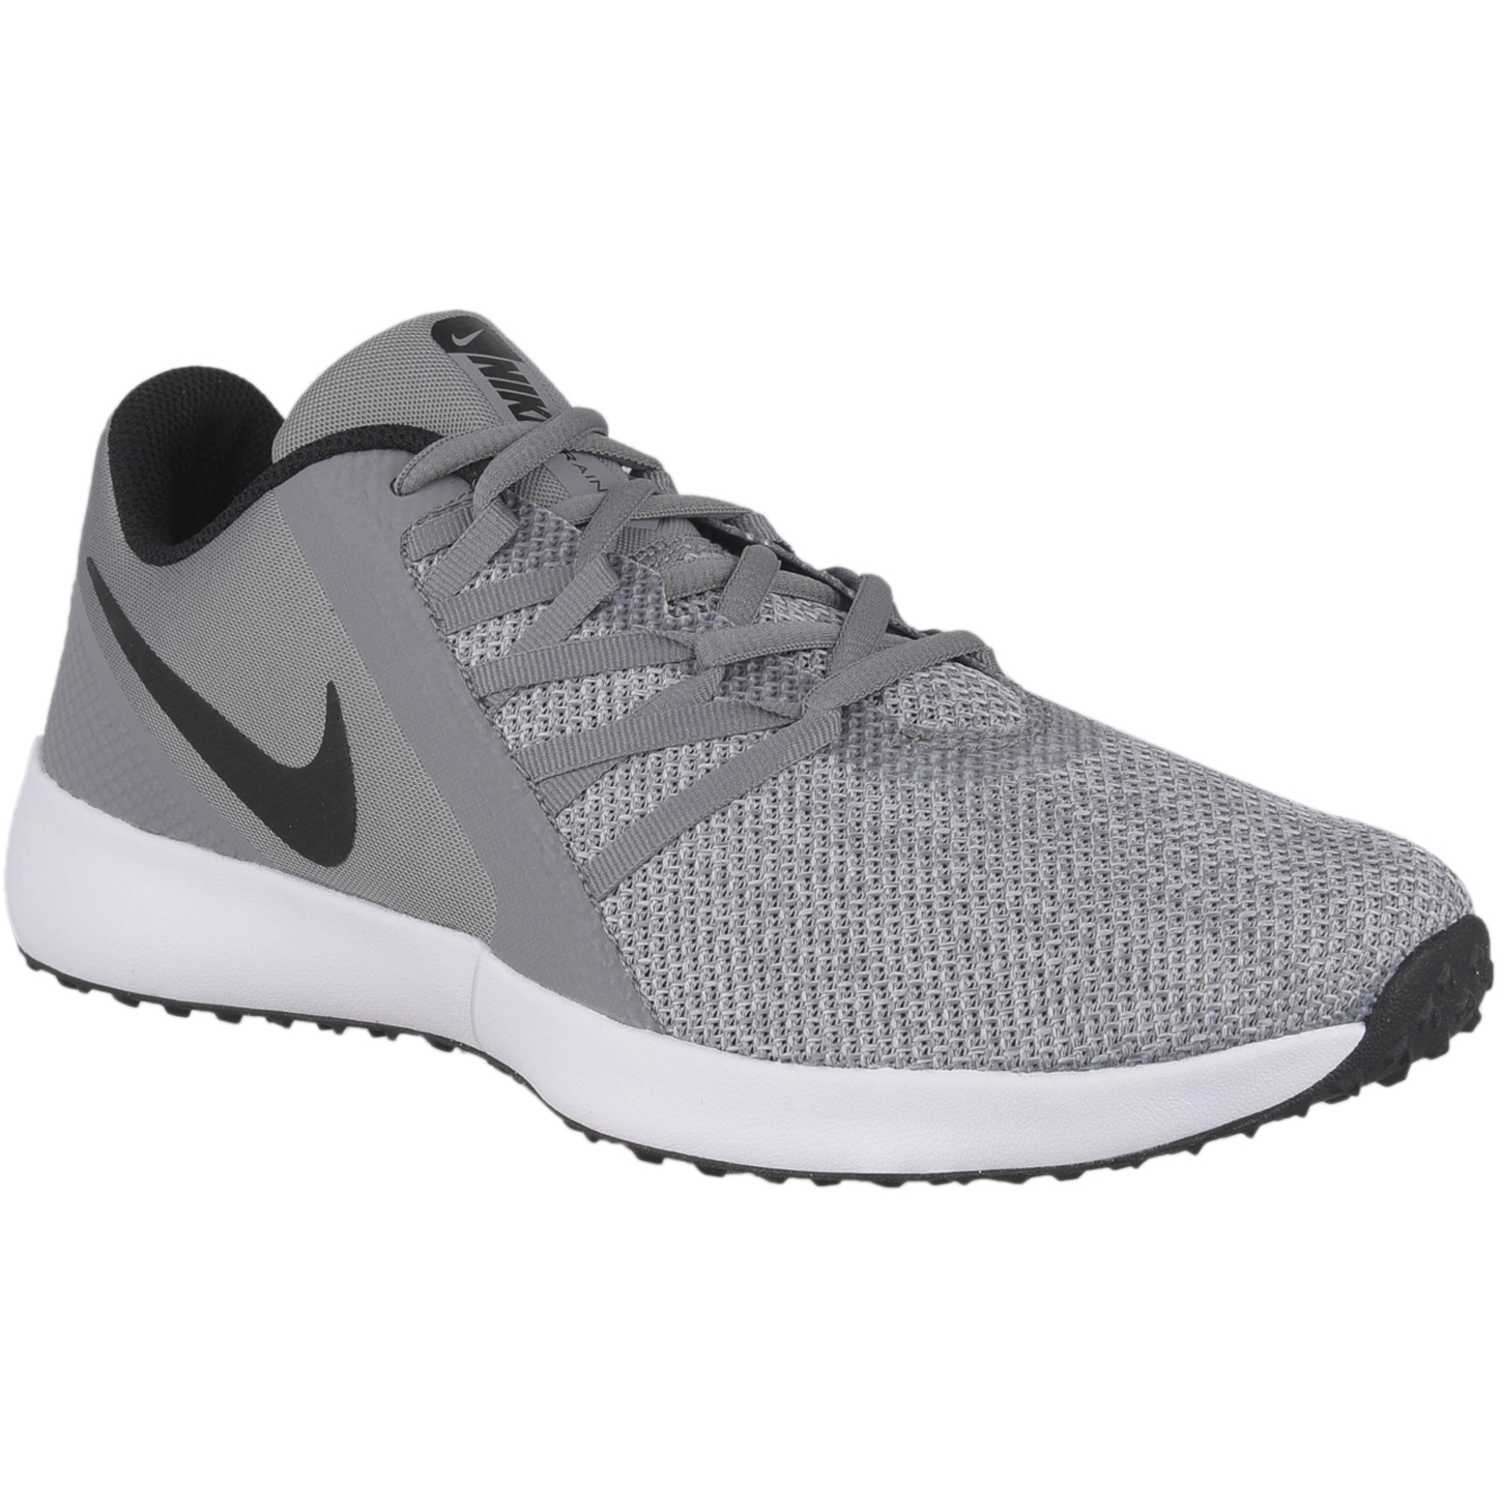 Nike nike varsity compete trainer Gris negro Hombres